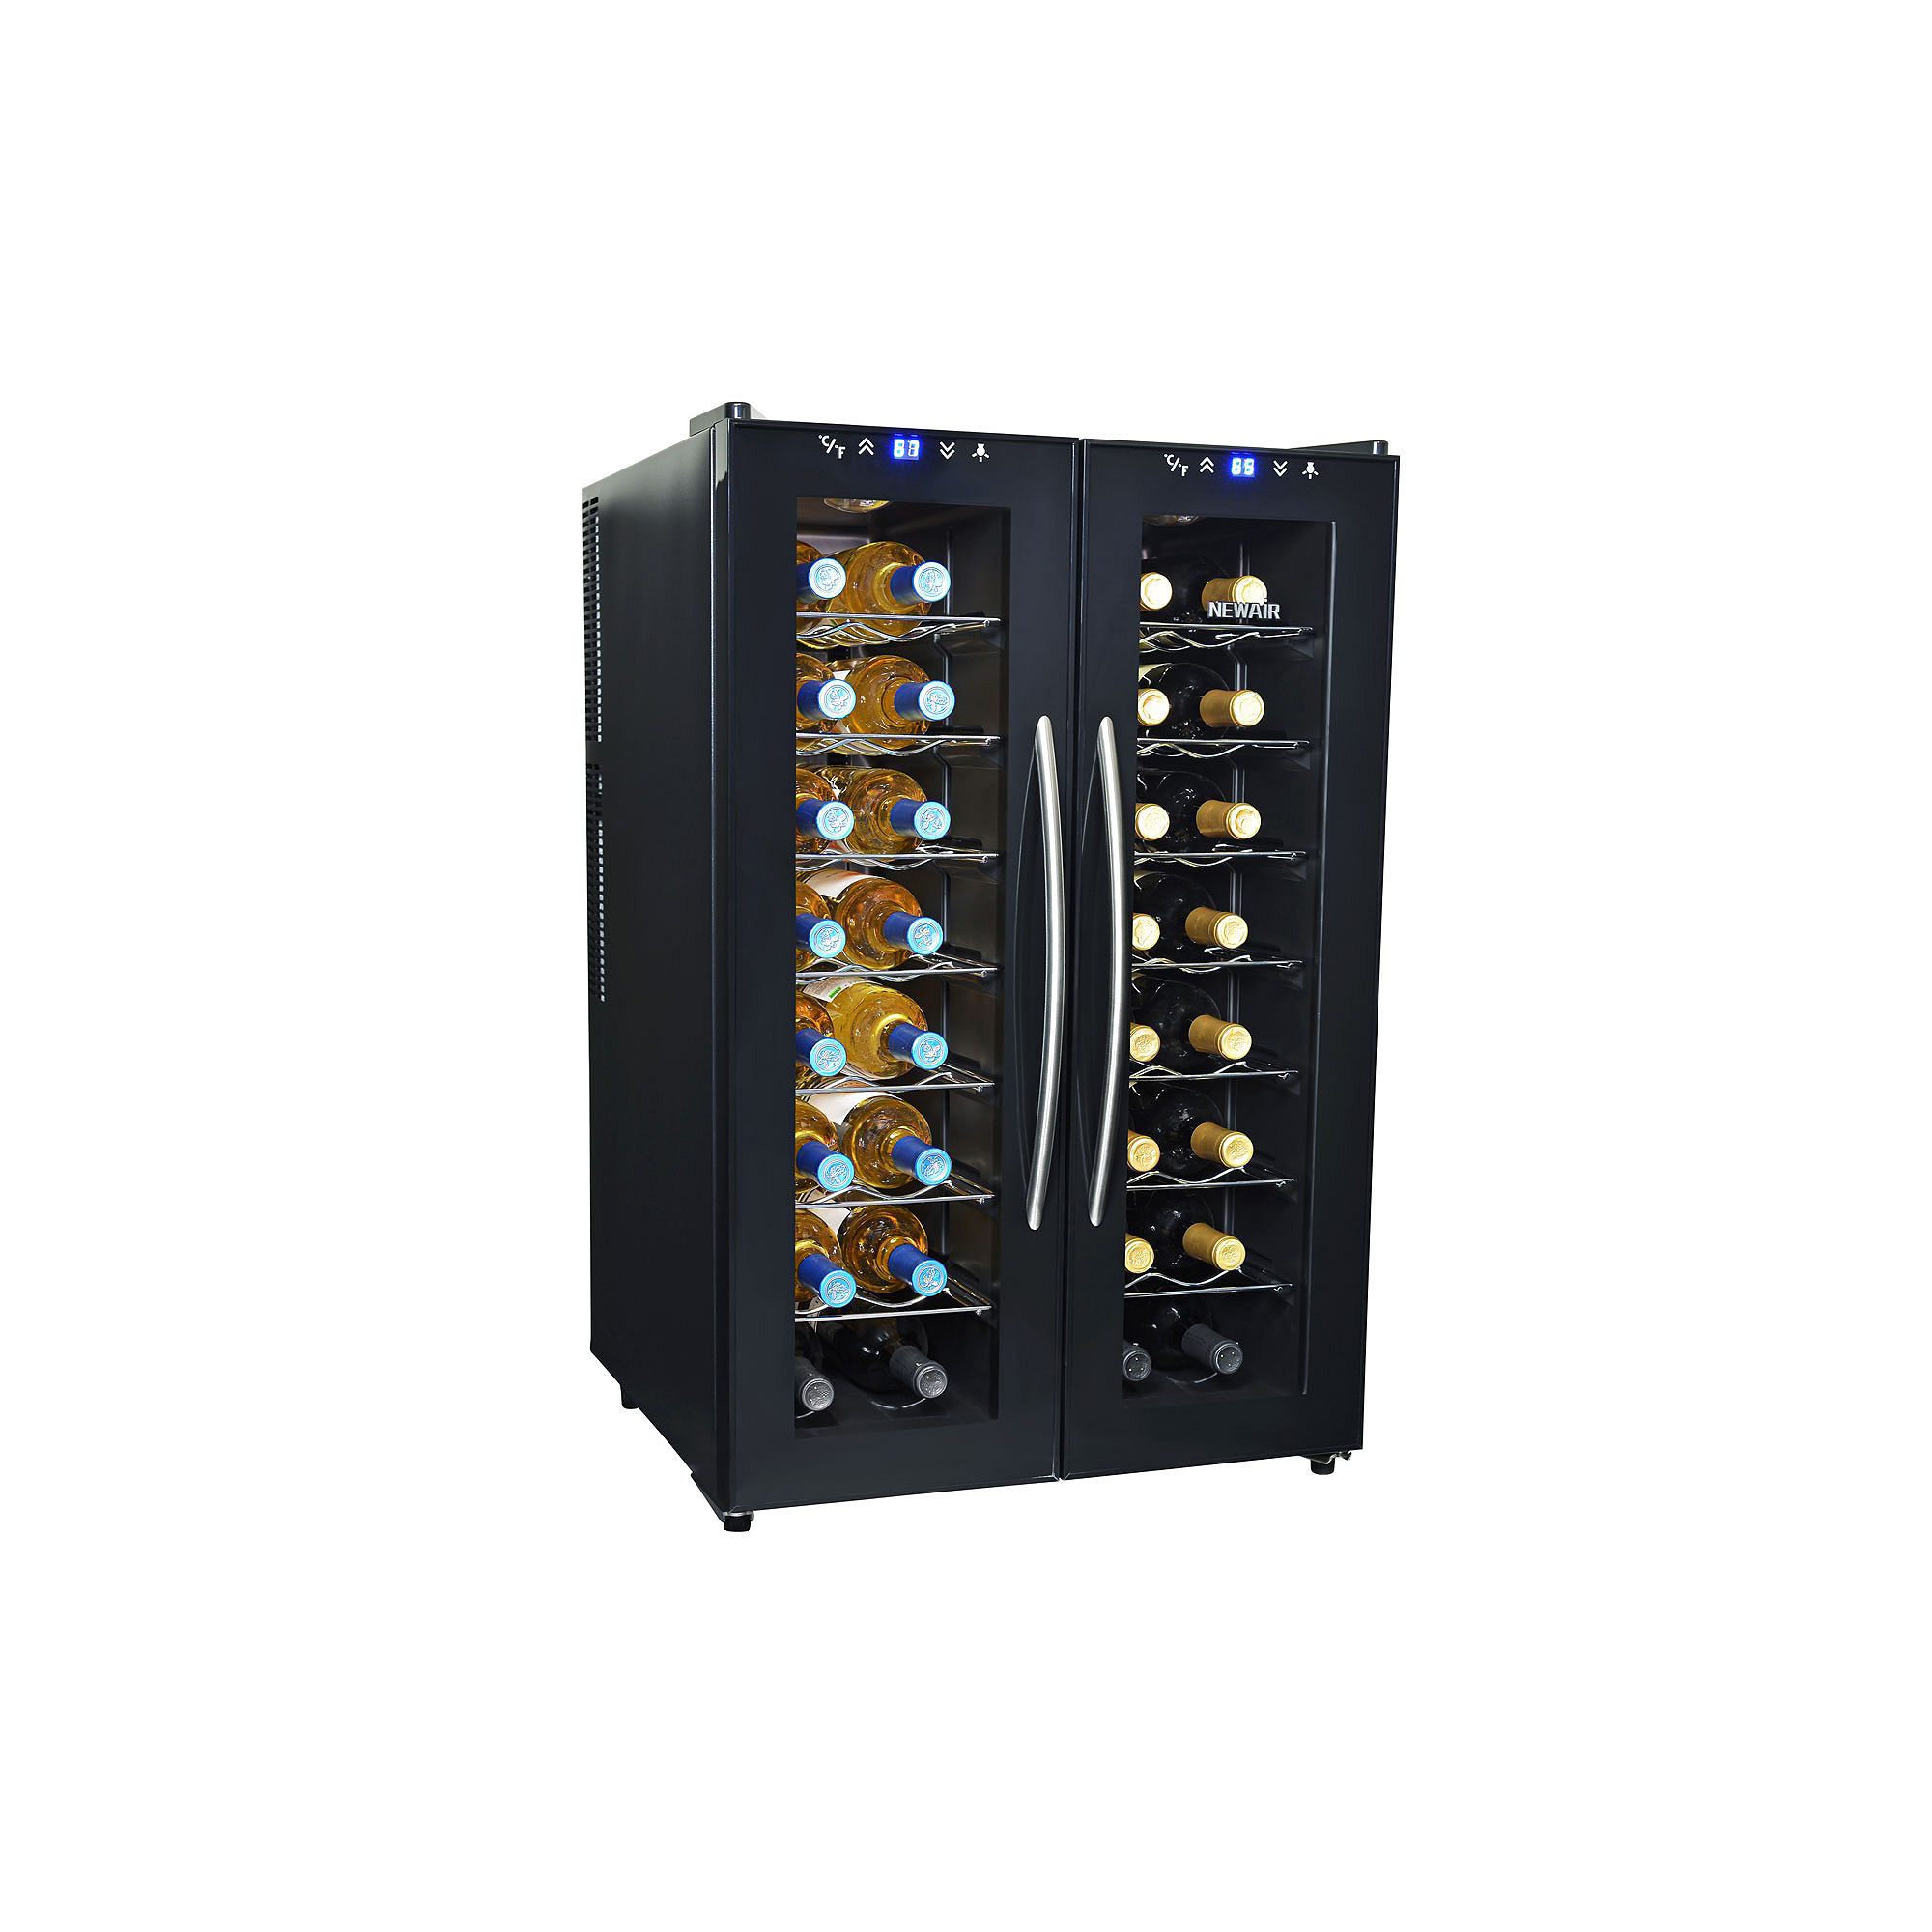 NewAir AW-320ED Dual Zone Thermoelectric Wine Cooler